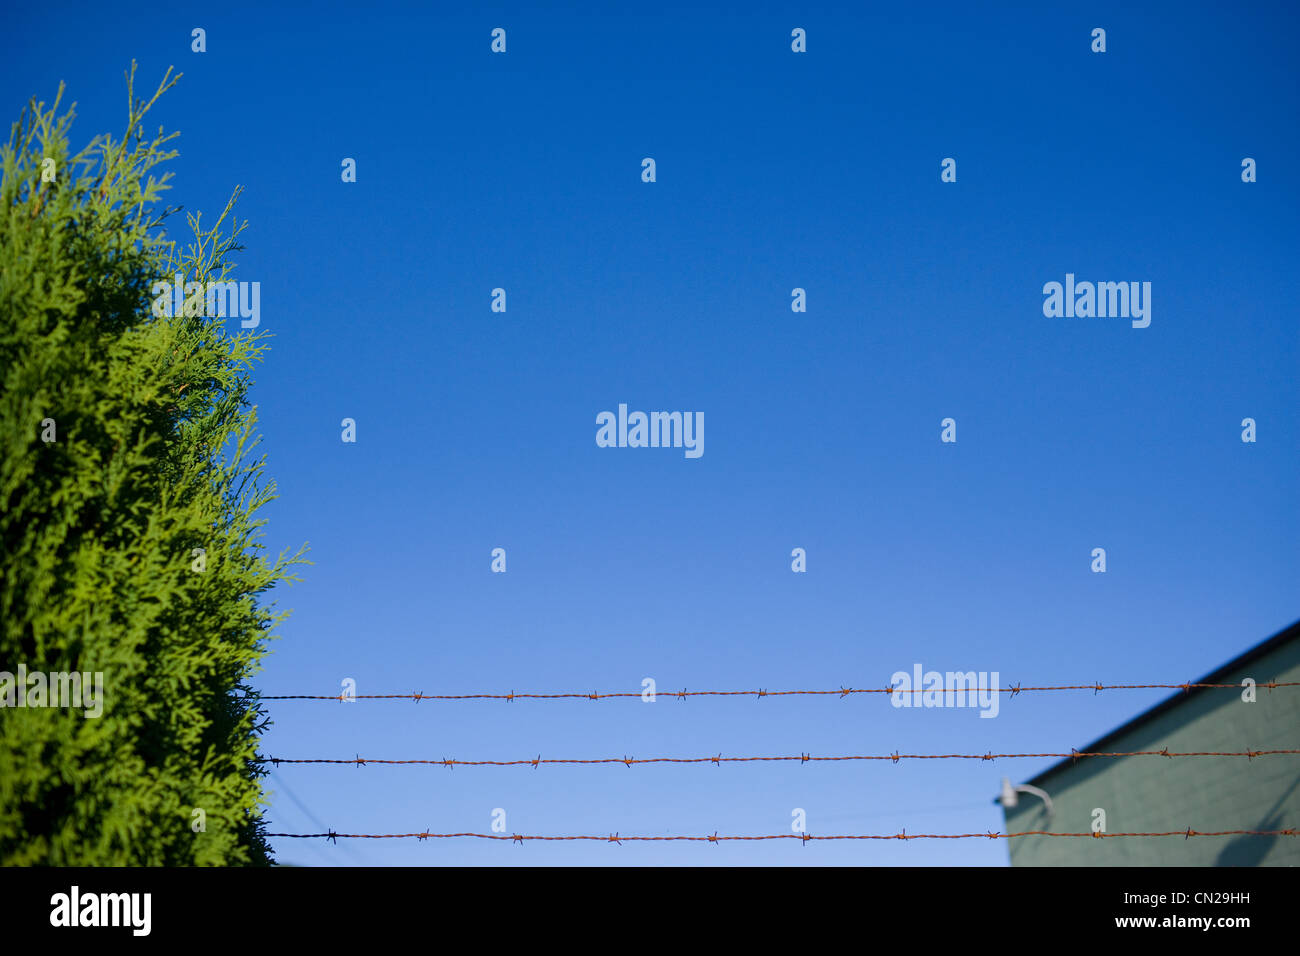 Barbed wire fence against clear blue sky Stock Photo